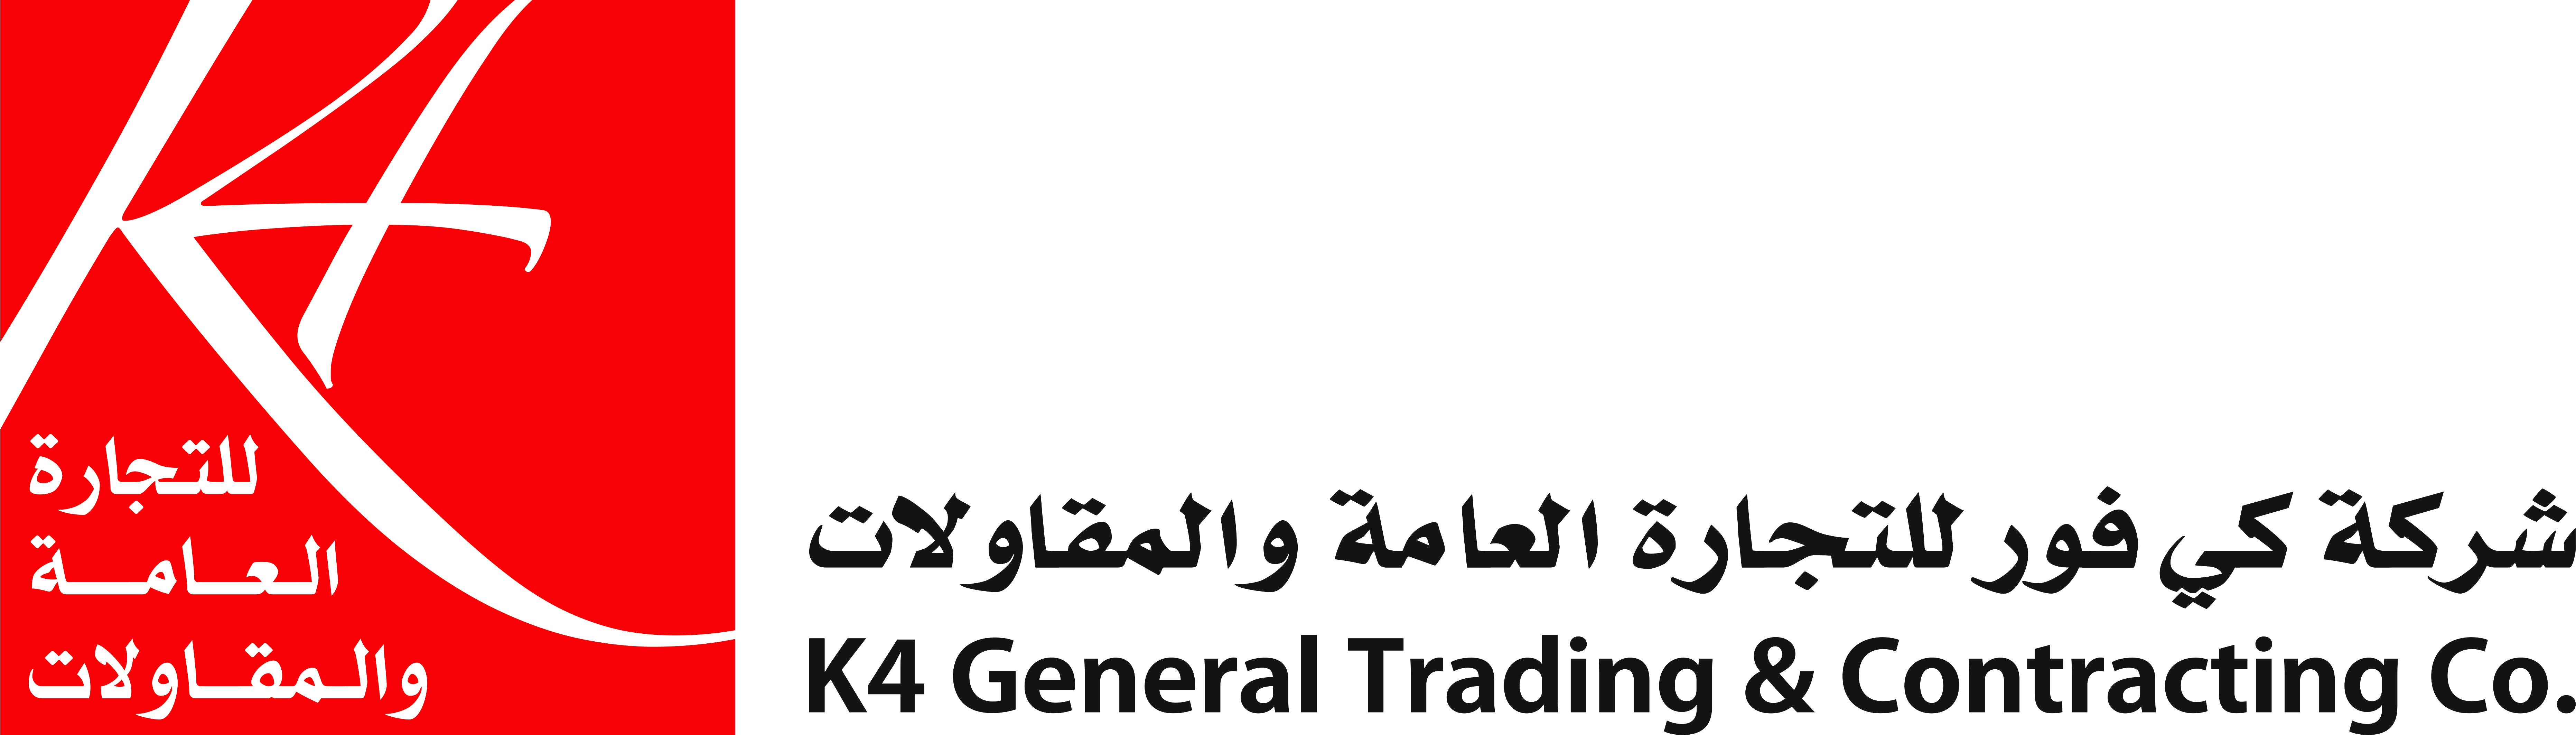 K4 General Trading & Contracting Co.